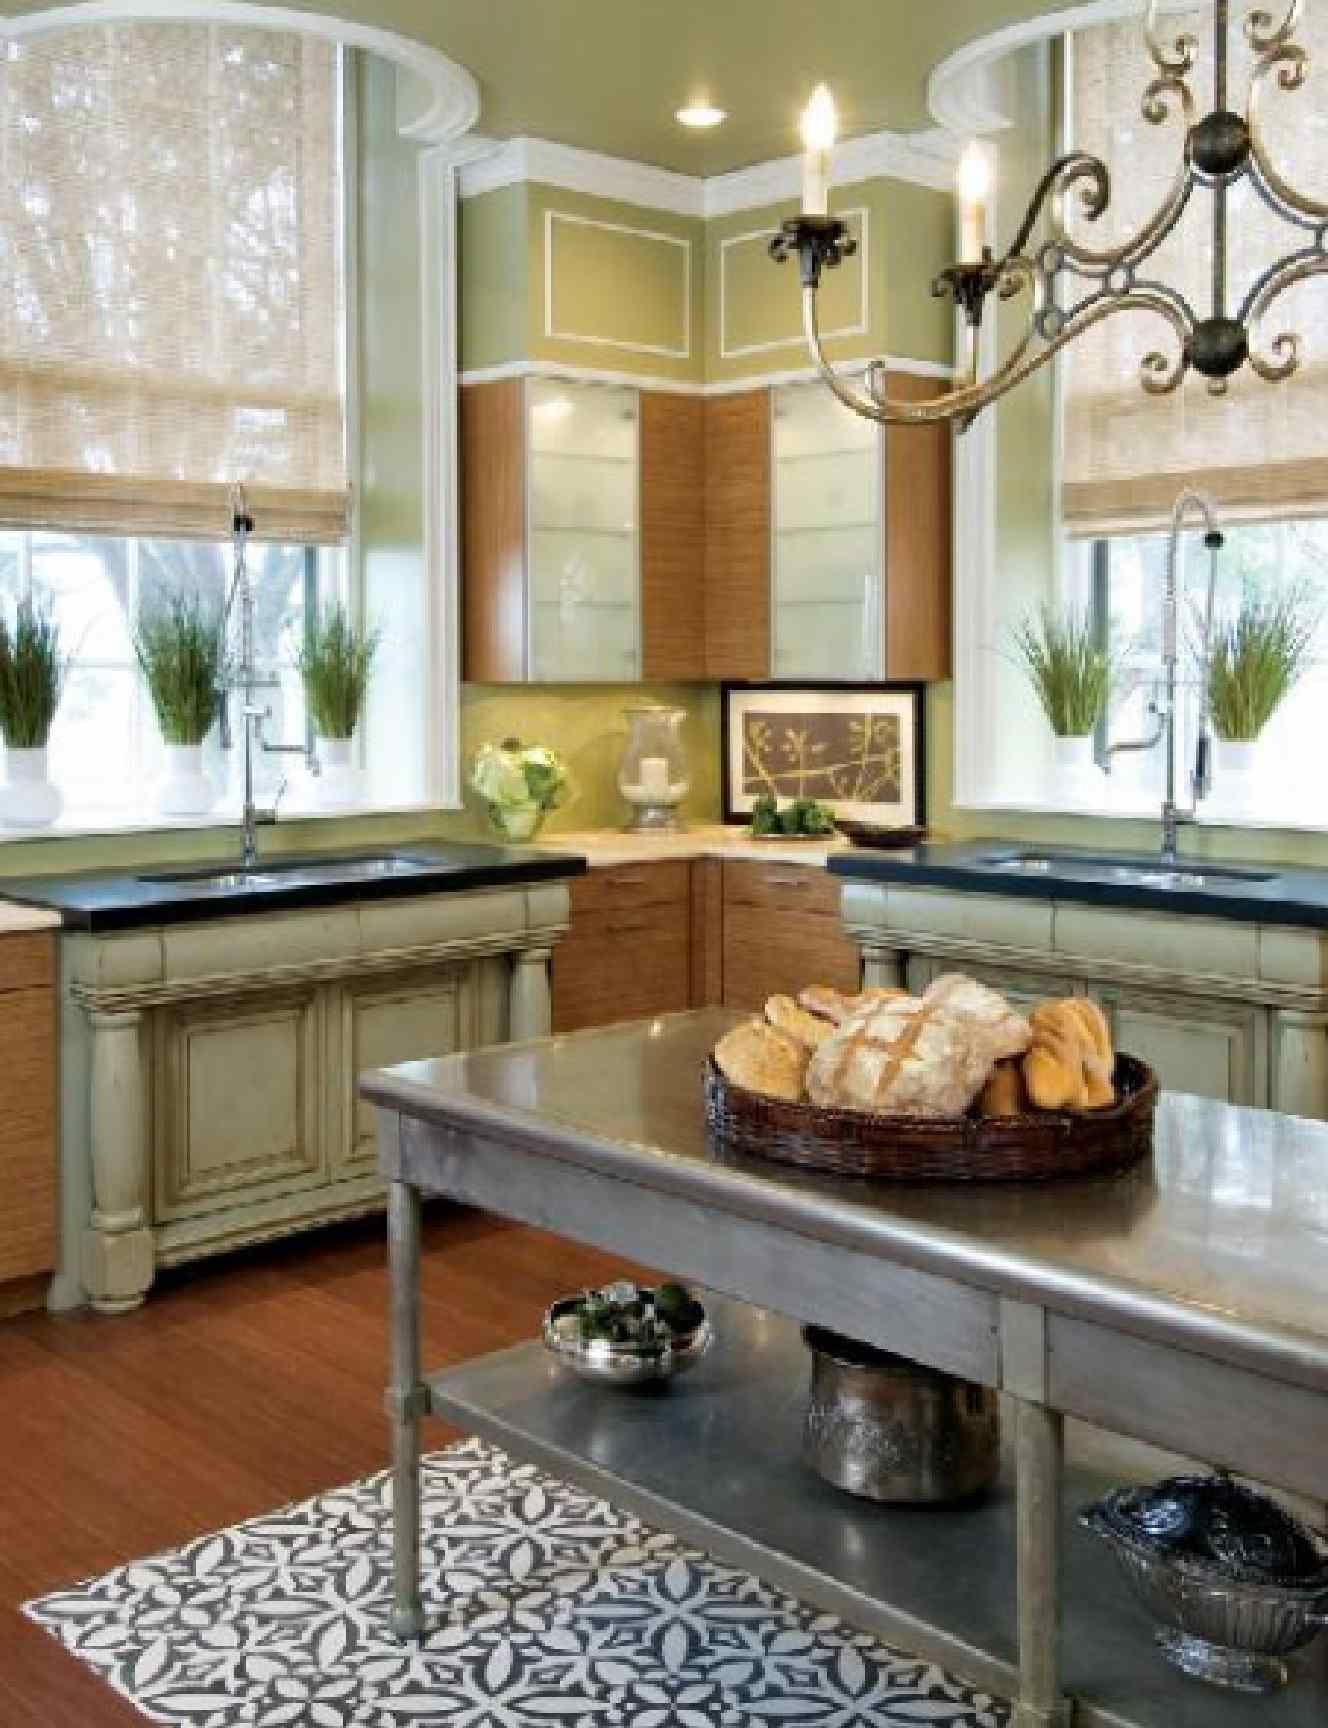 bistro italian theme ideas beautiful ideas kitchen decor kitchen